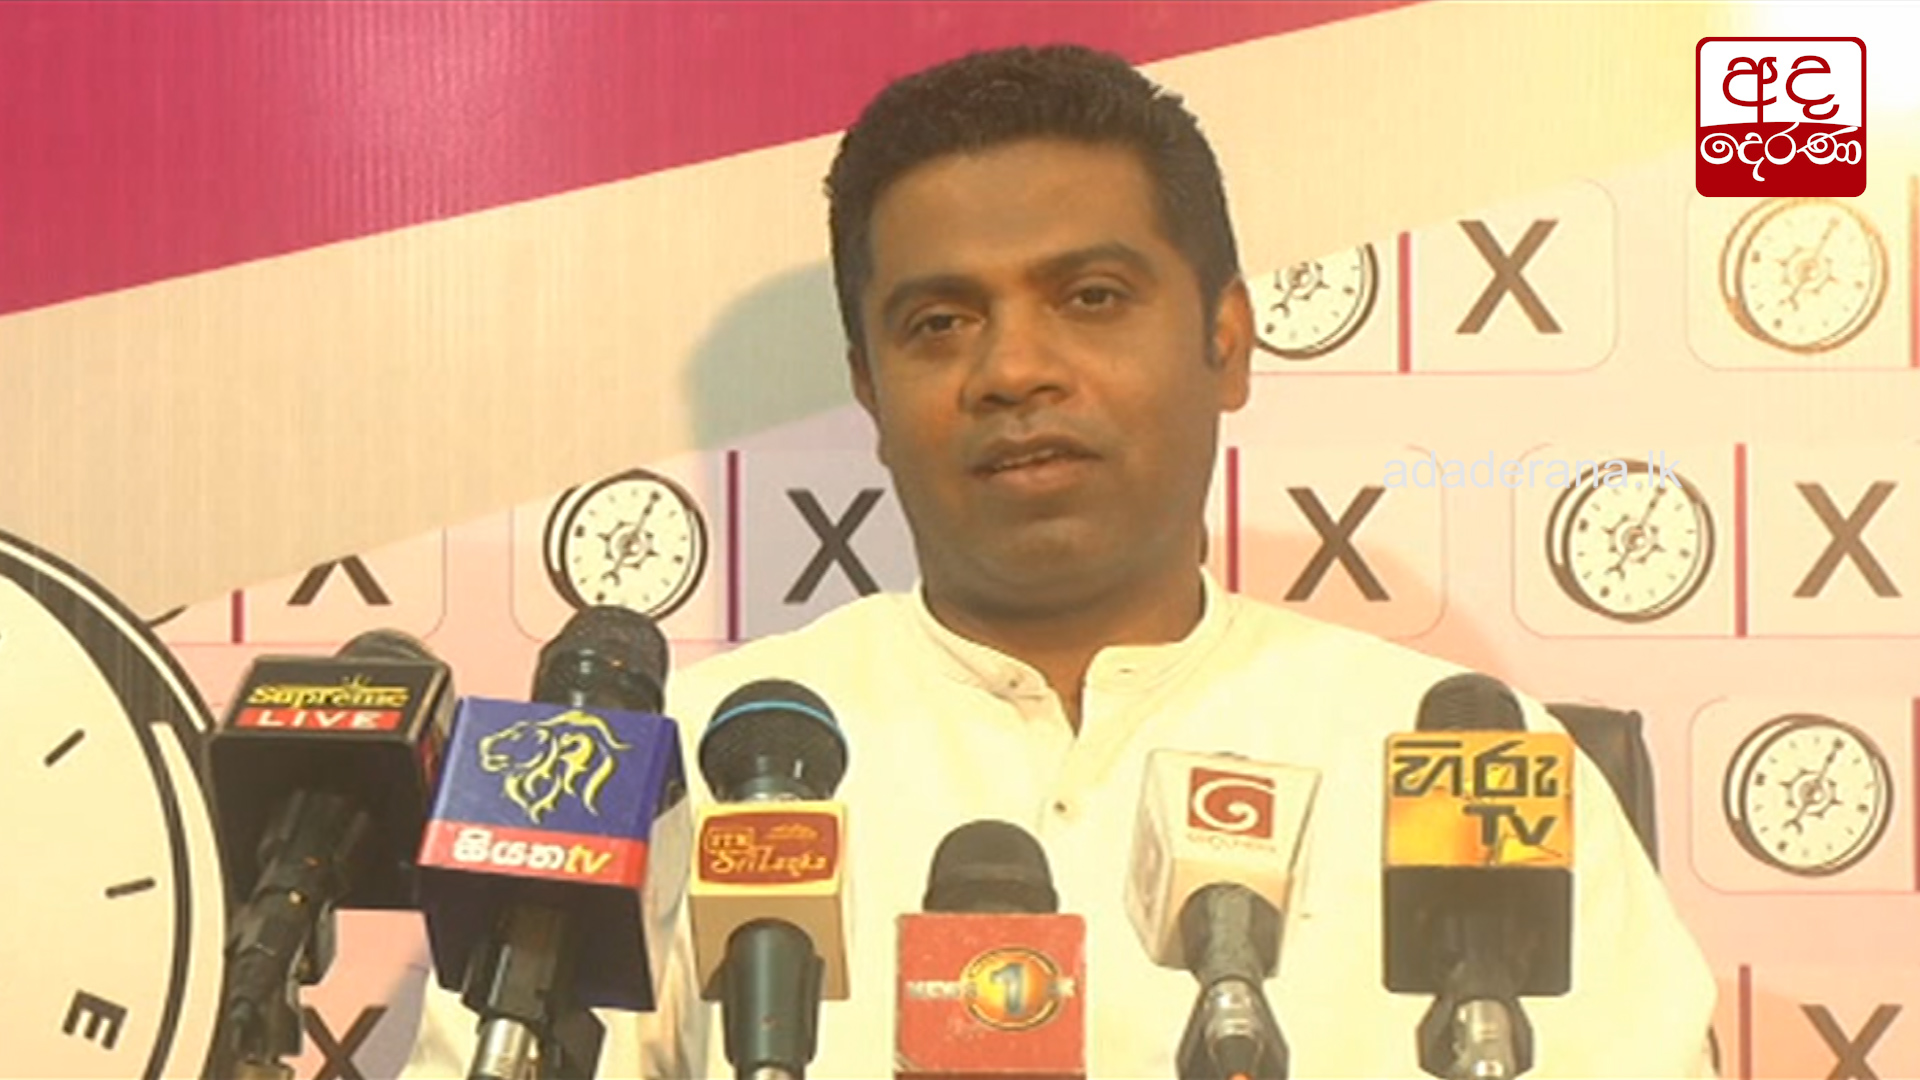 UNP is set to mark the end of a journey - Nalinda Jayatissa